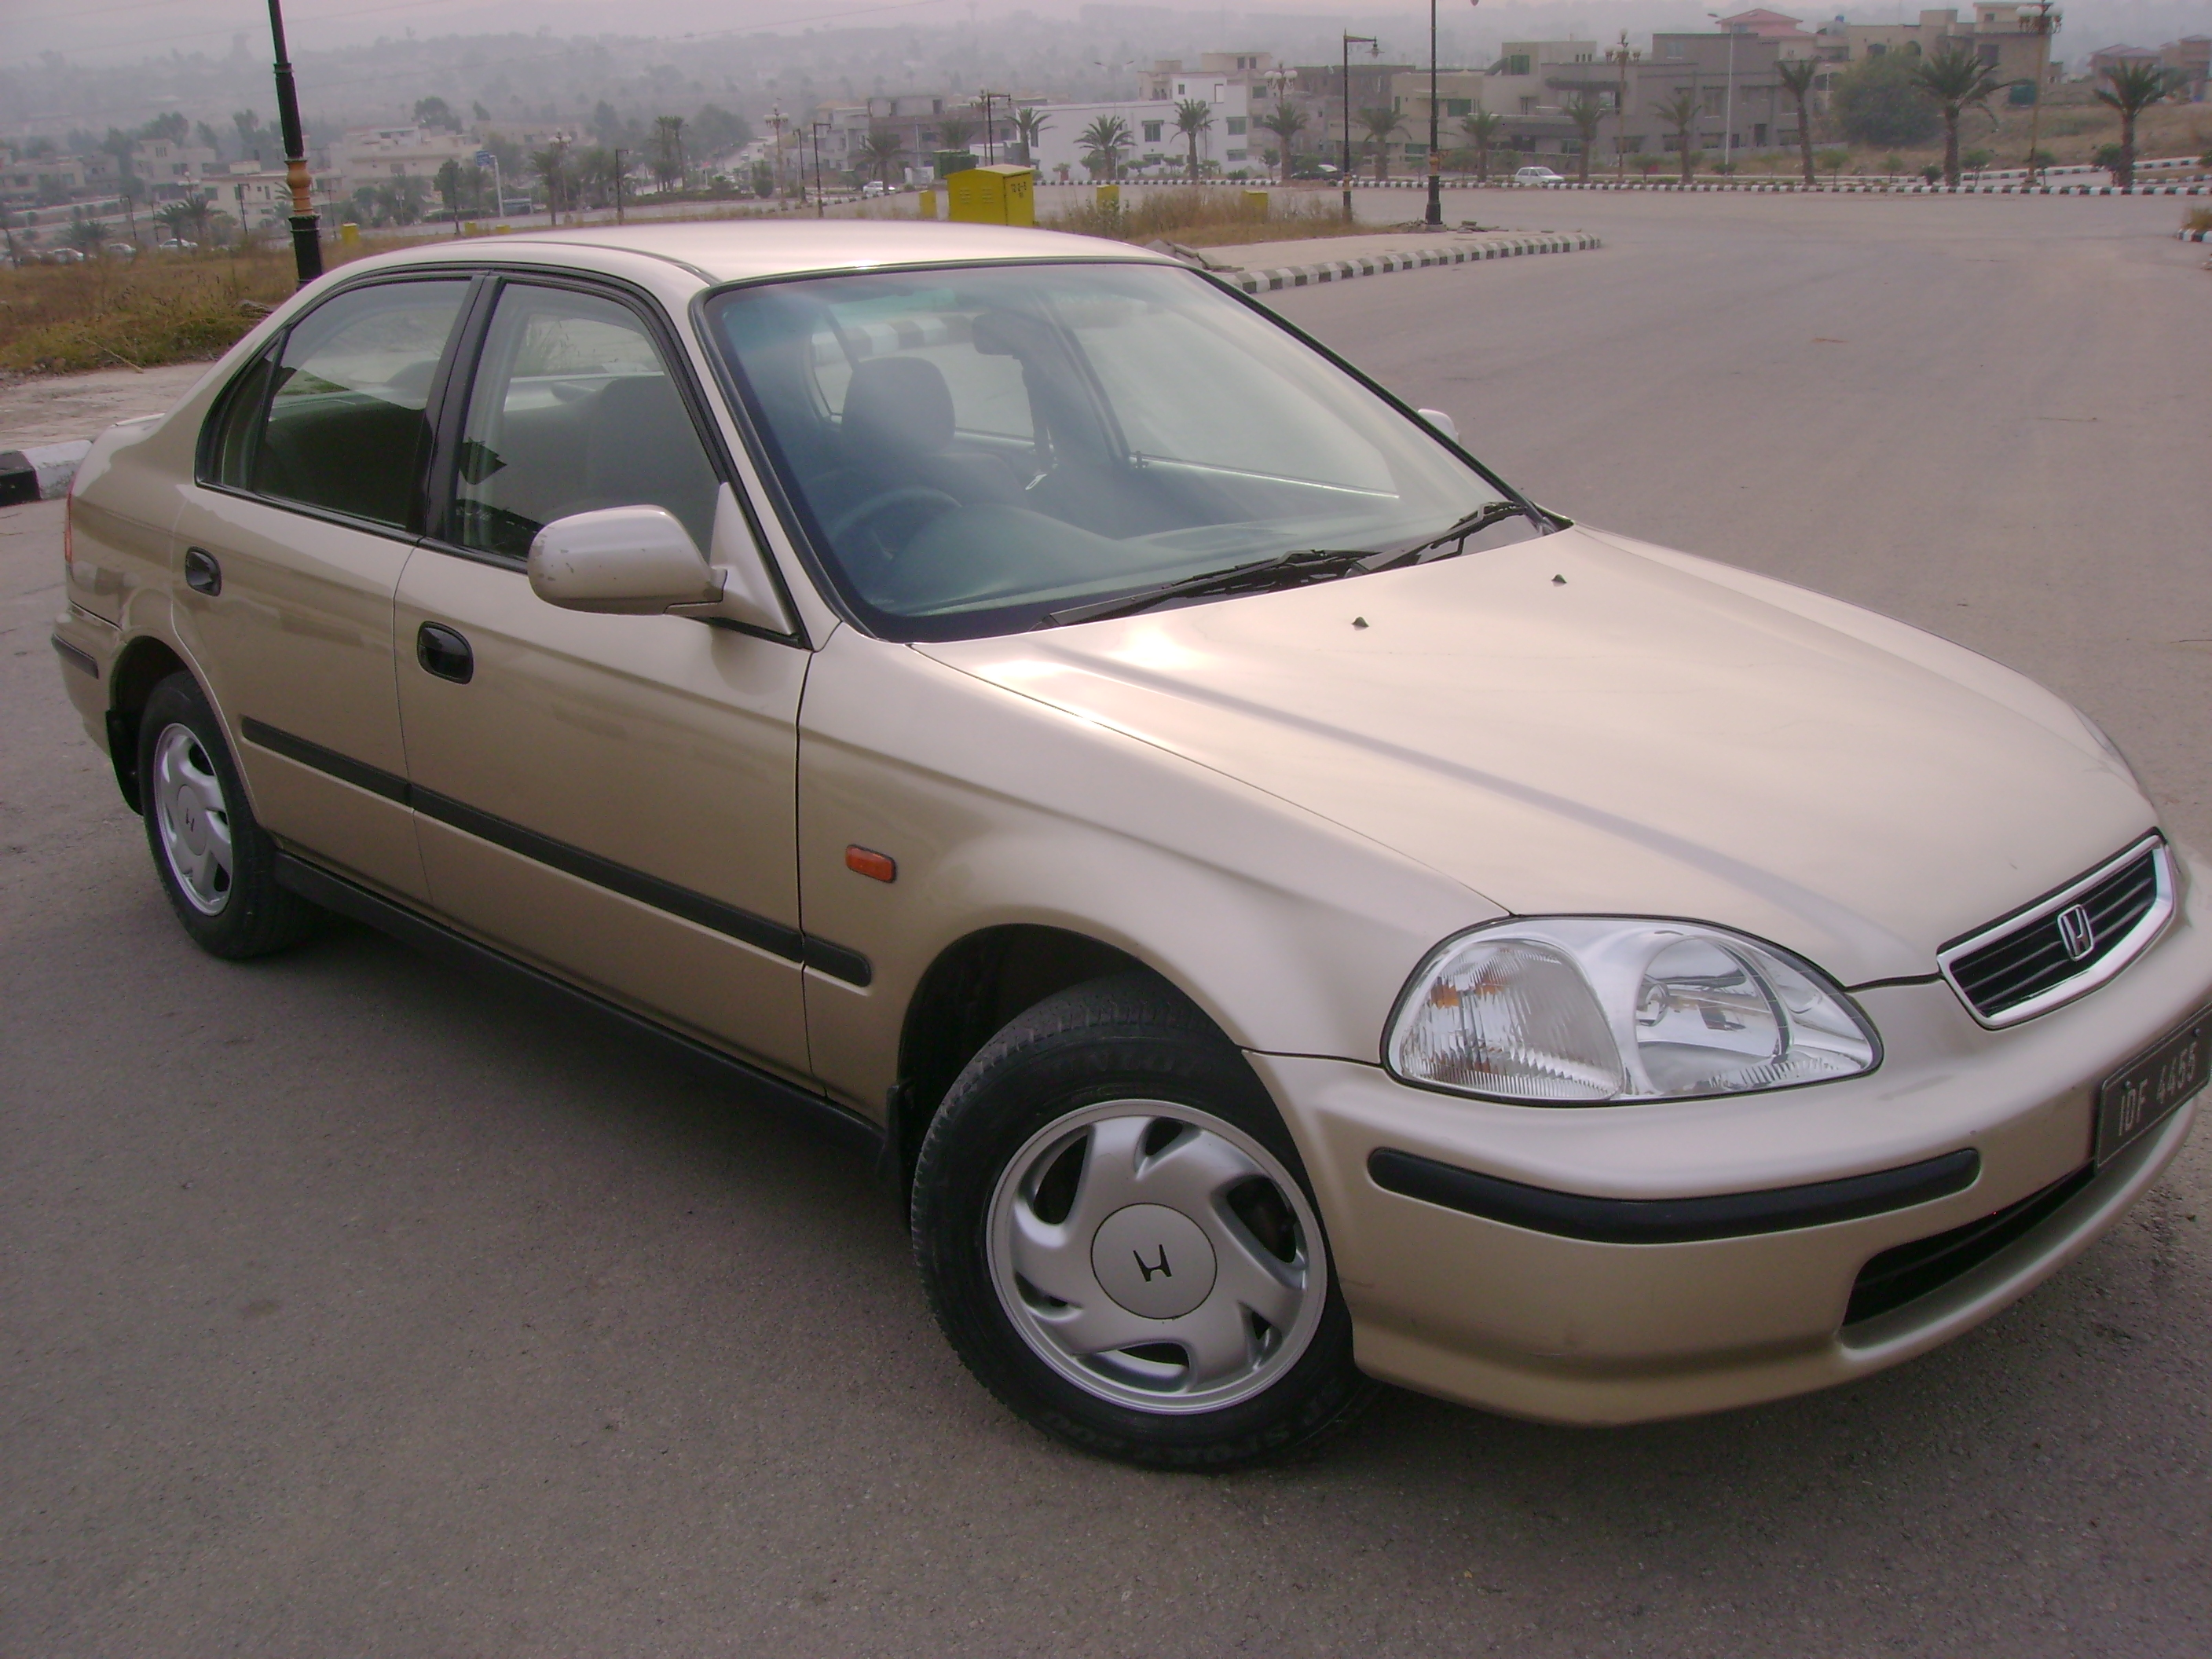 Honda Civic 1997 Of Fahad777 Member Ride 16598 Pakwheels